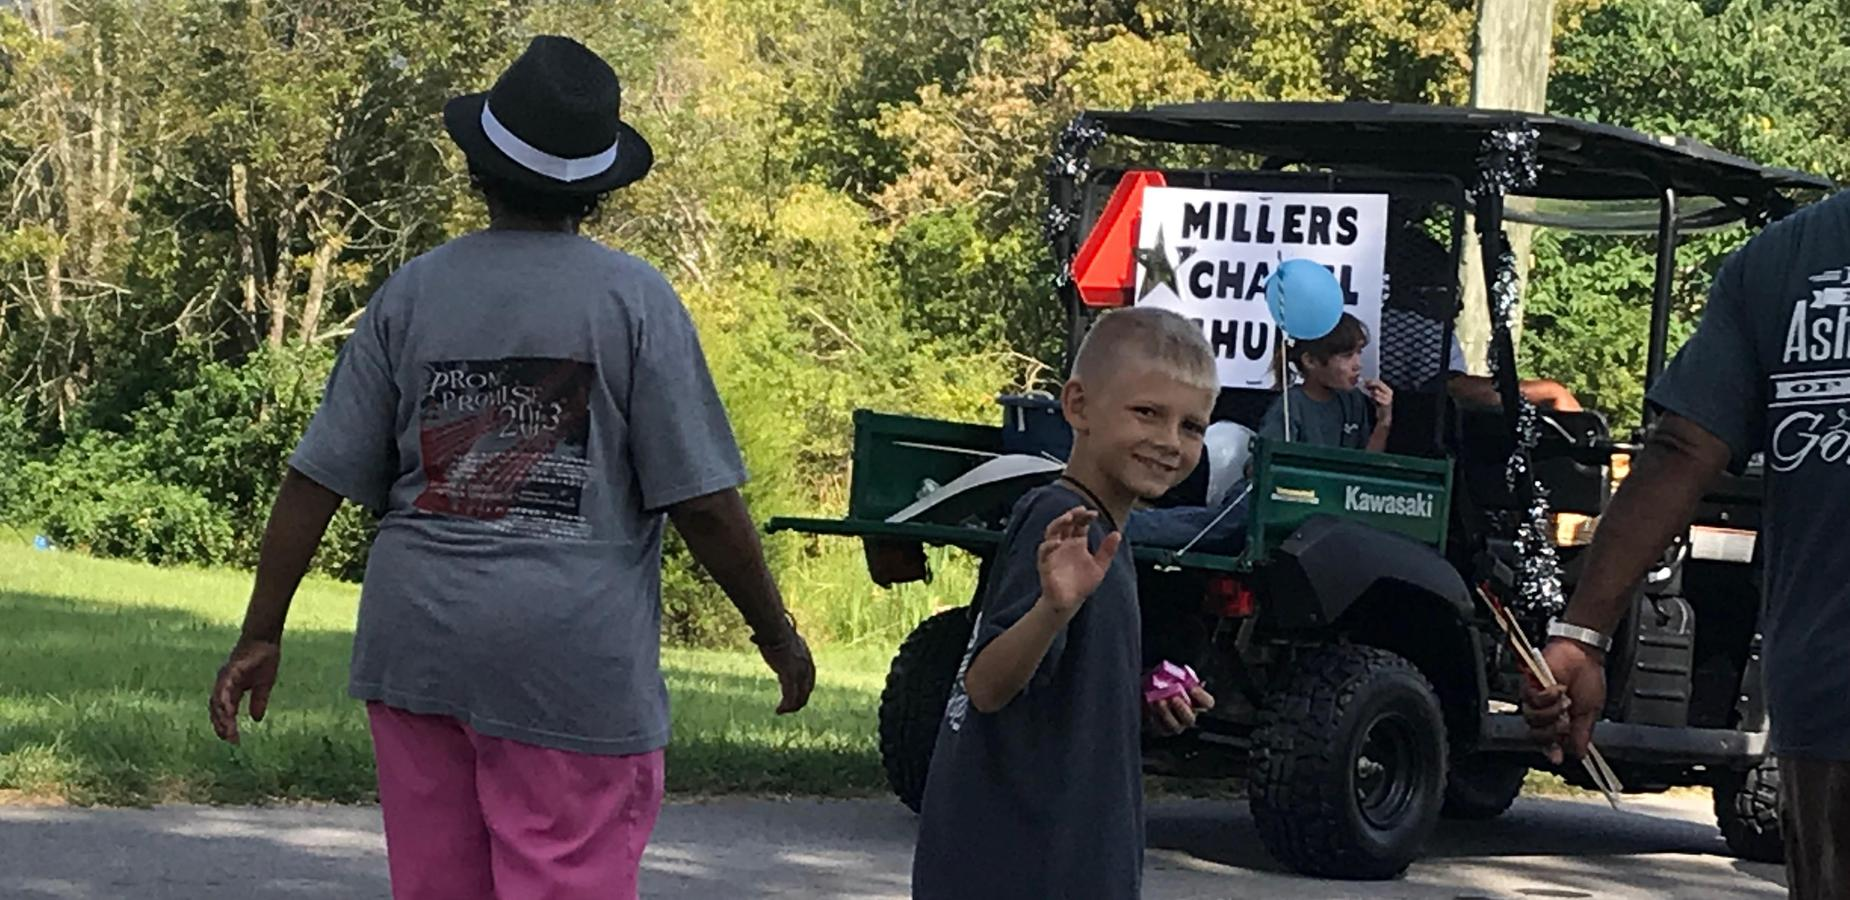 Parade walk with Millers Chapel Church.